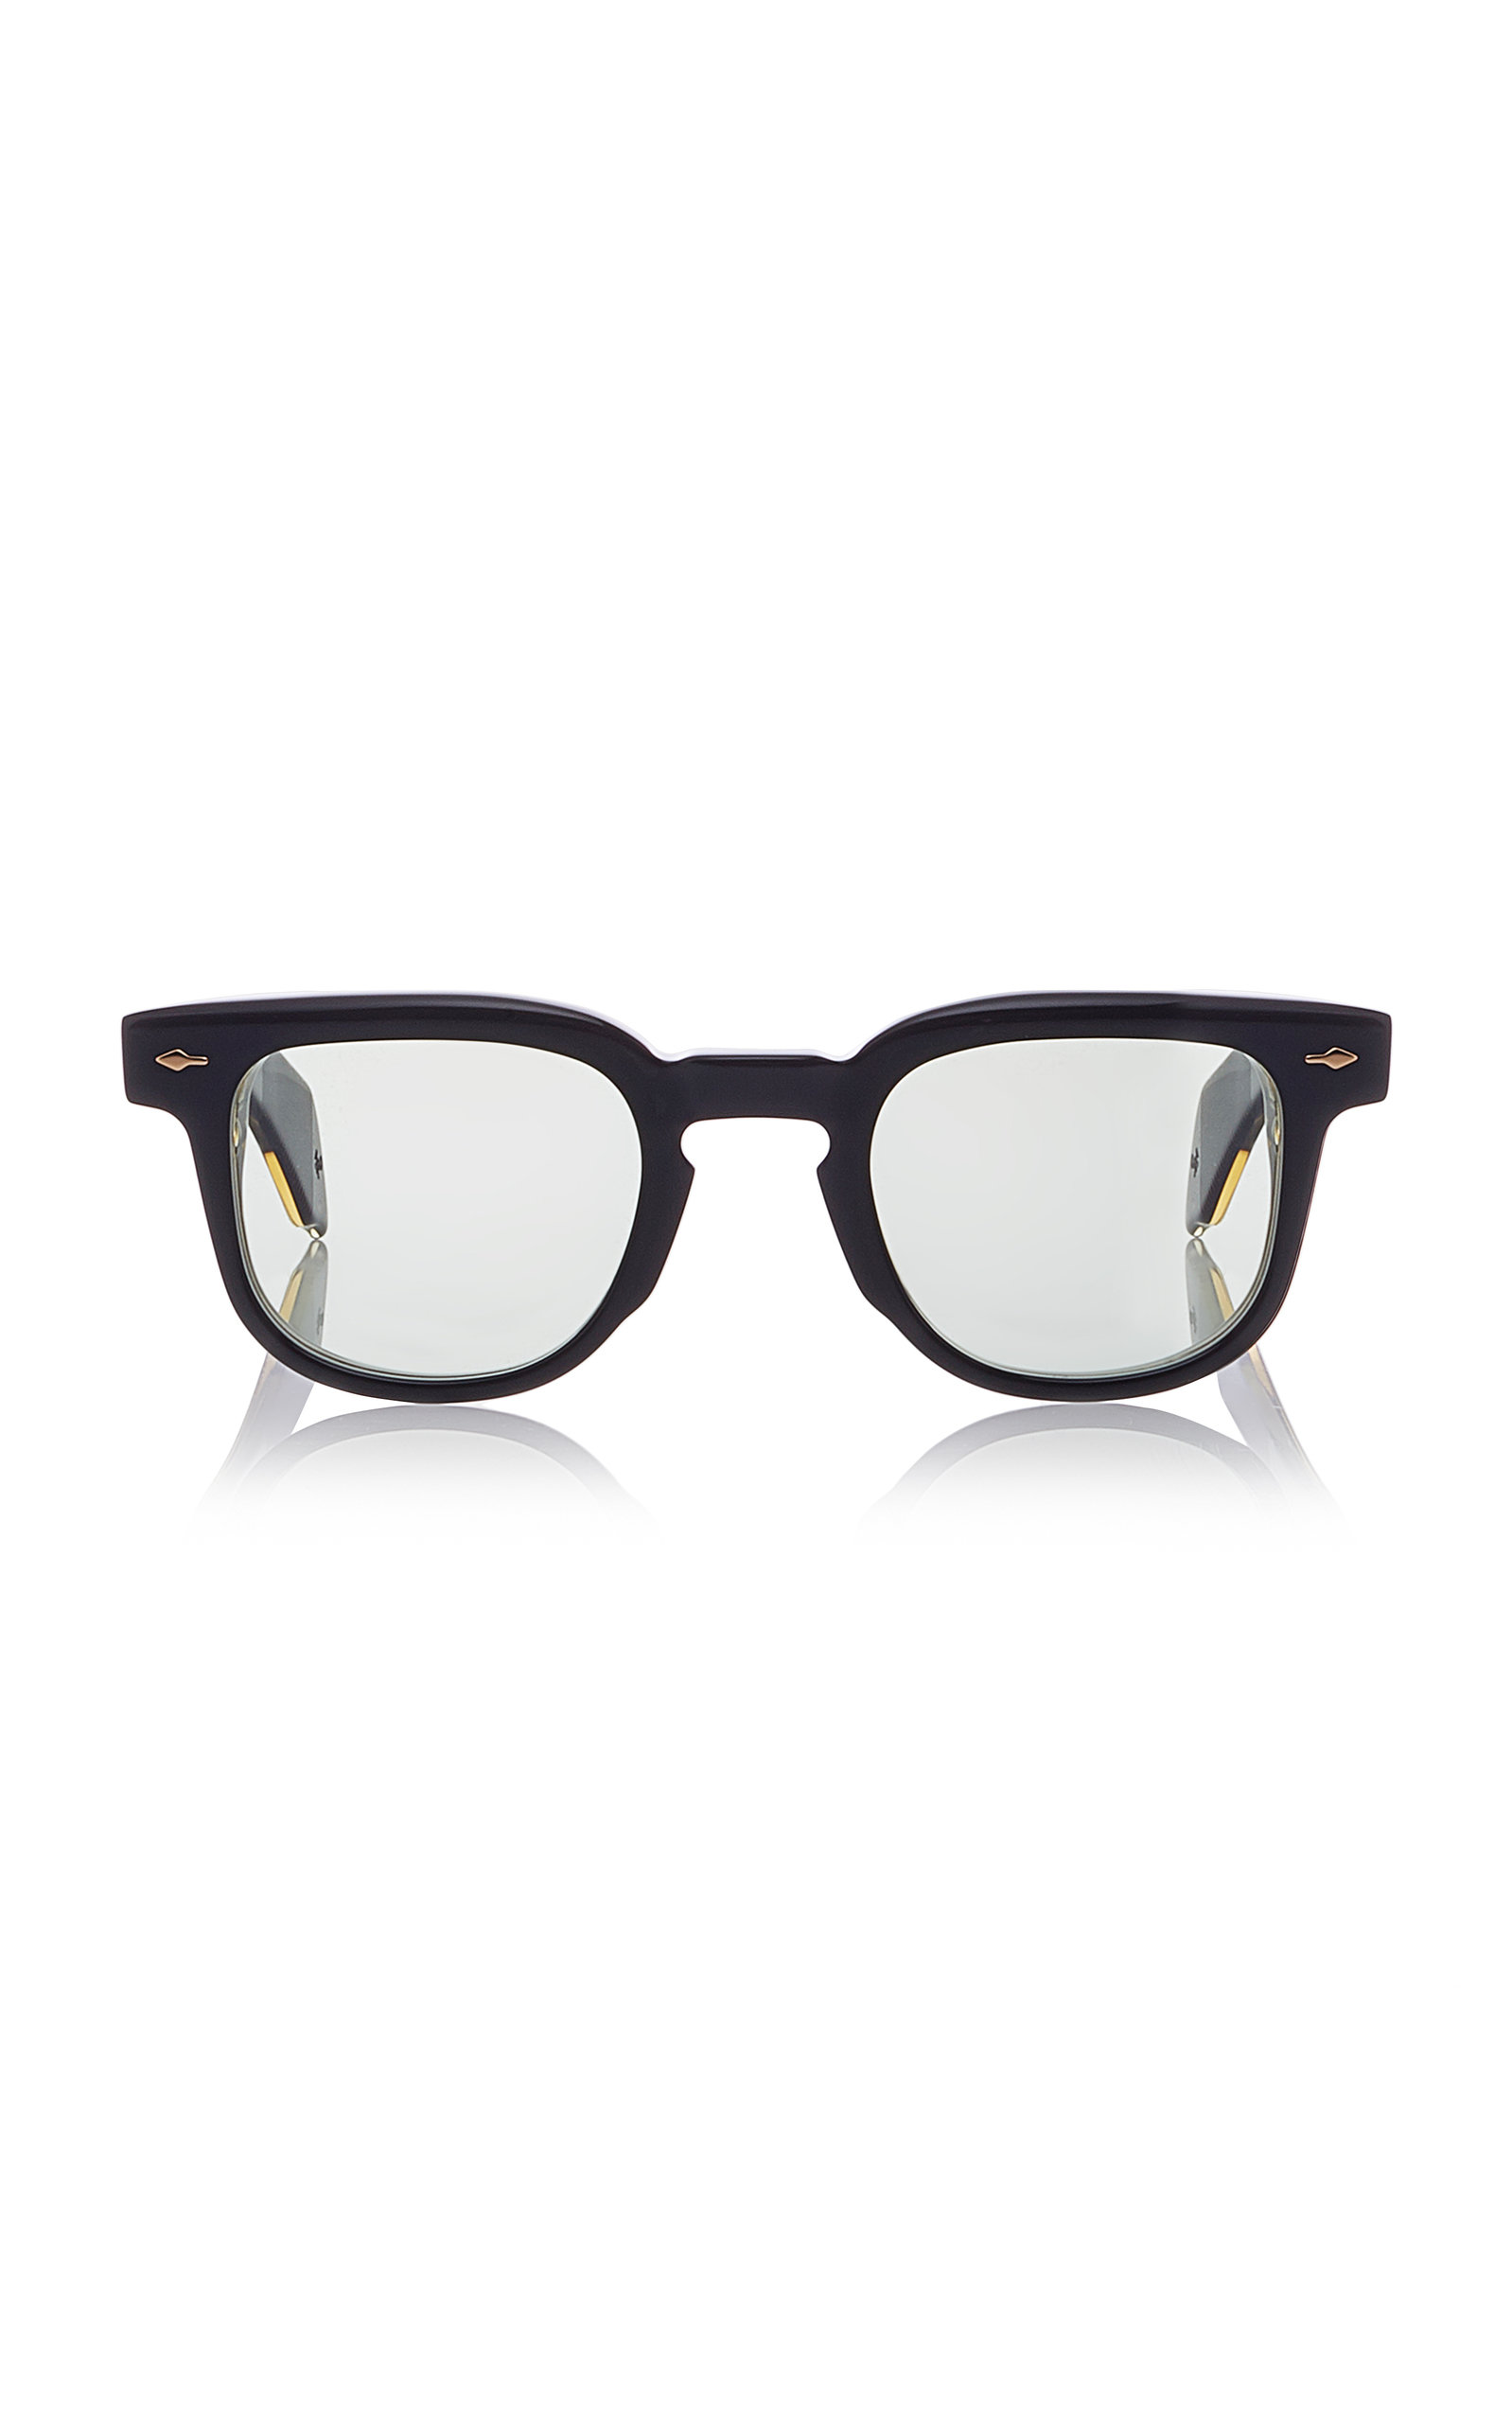 887f145d919 Jax Square-Frame Acetate Sunglasses by Jacques Marie Mage